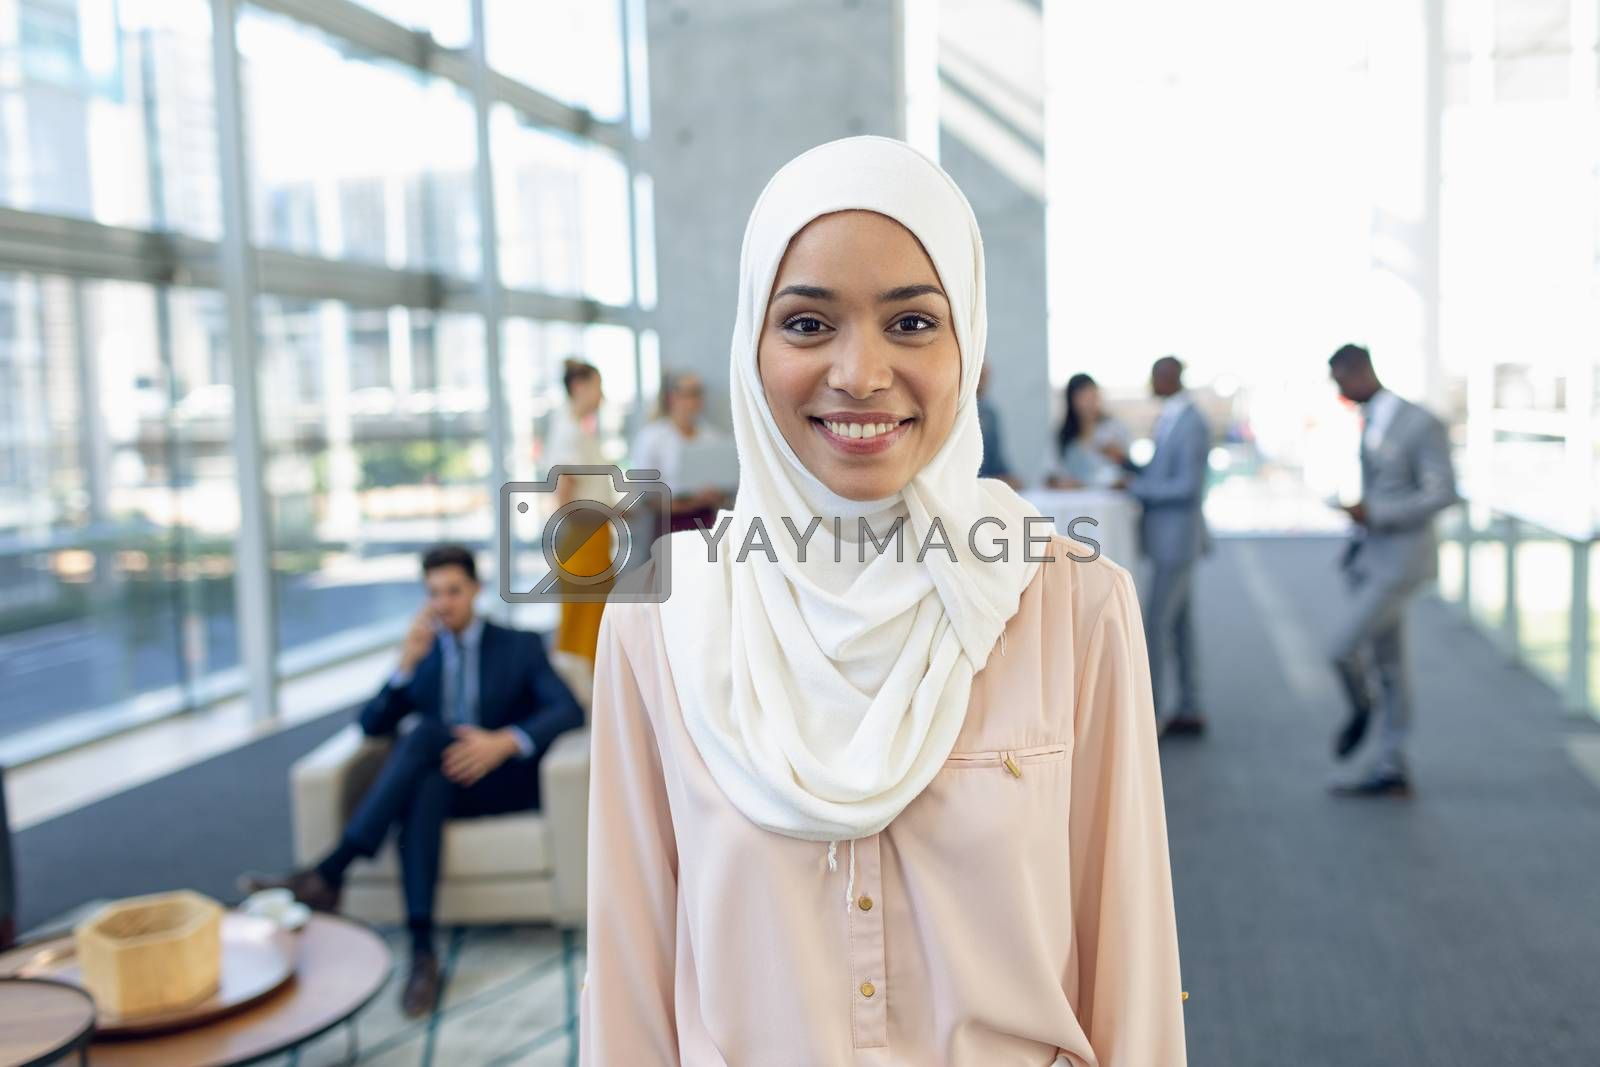 Front view of young pretty businesswoman in hijab looking at camera while standing in modern office. Behind her, colleagues interacting with each other.